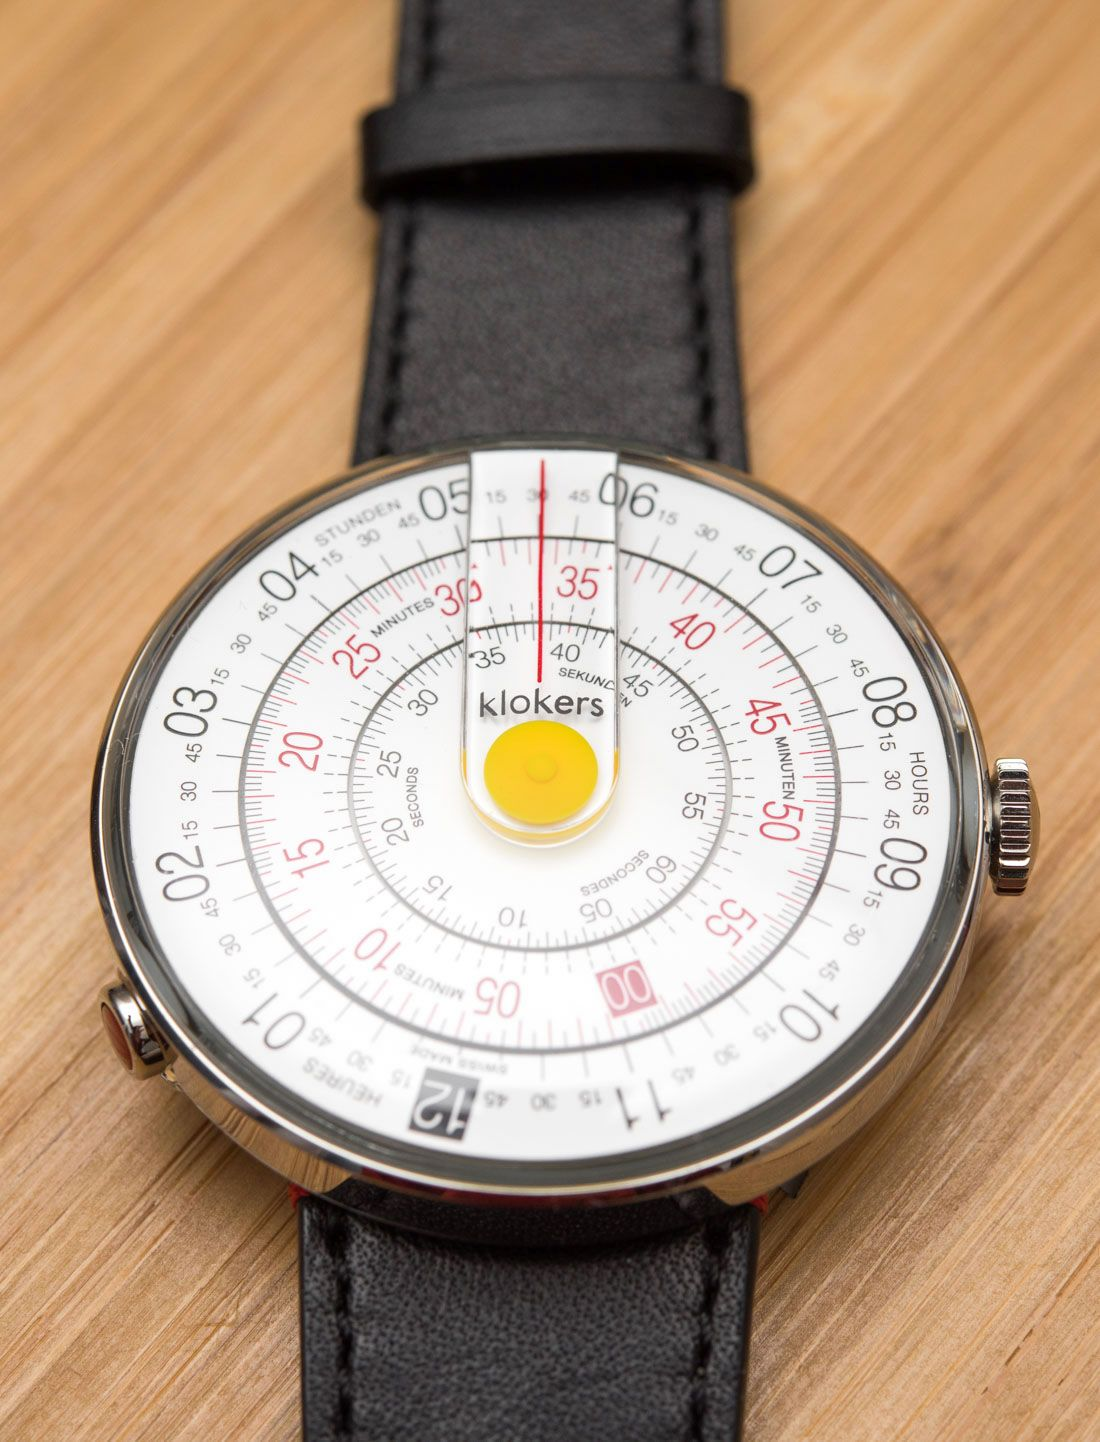 """Klokers Klok-01 Watch Review - by David Bredan - This unique piece actually harkens back to slide rules. More details at: aBlogtoWatch.com - """"I genuinely like the concept of new, creative, and affordable watches that can serve as a viable alternative in the fashion watch segment for those looking for something more unique. This is the Klokers Klok-01, a Swiss-made watch from a French company that promises to blend unusual but functional design and solid quality..."""""""